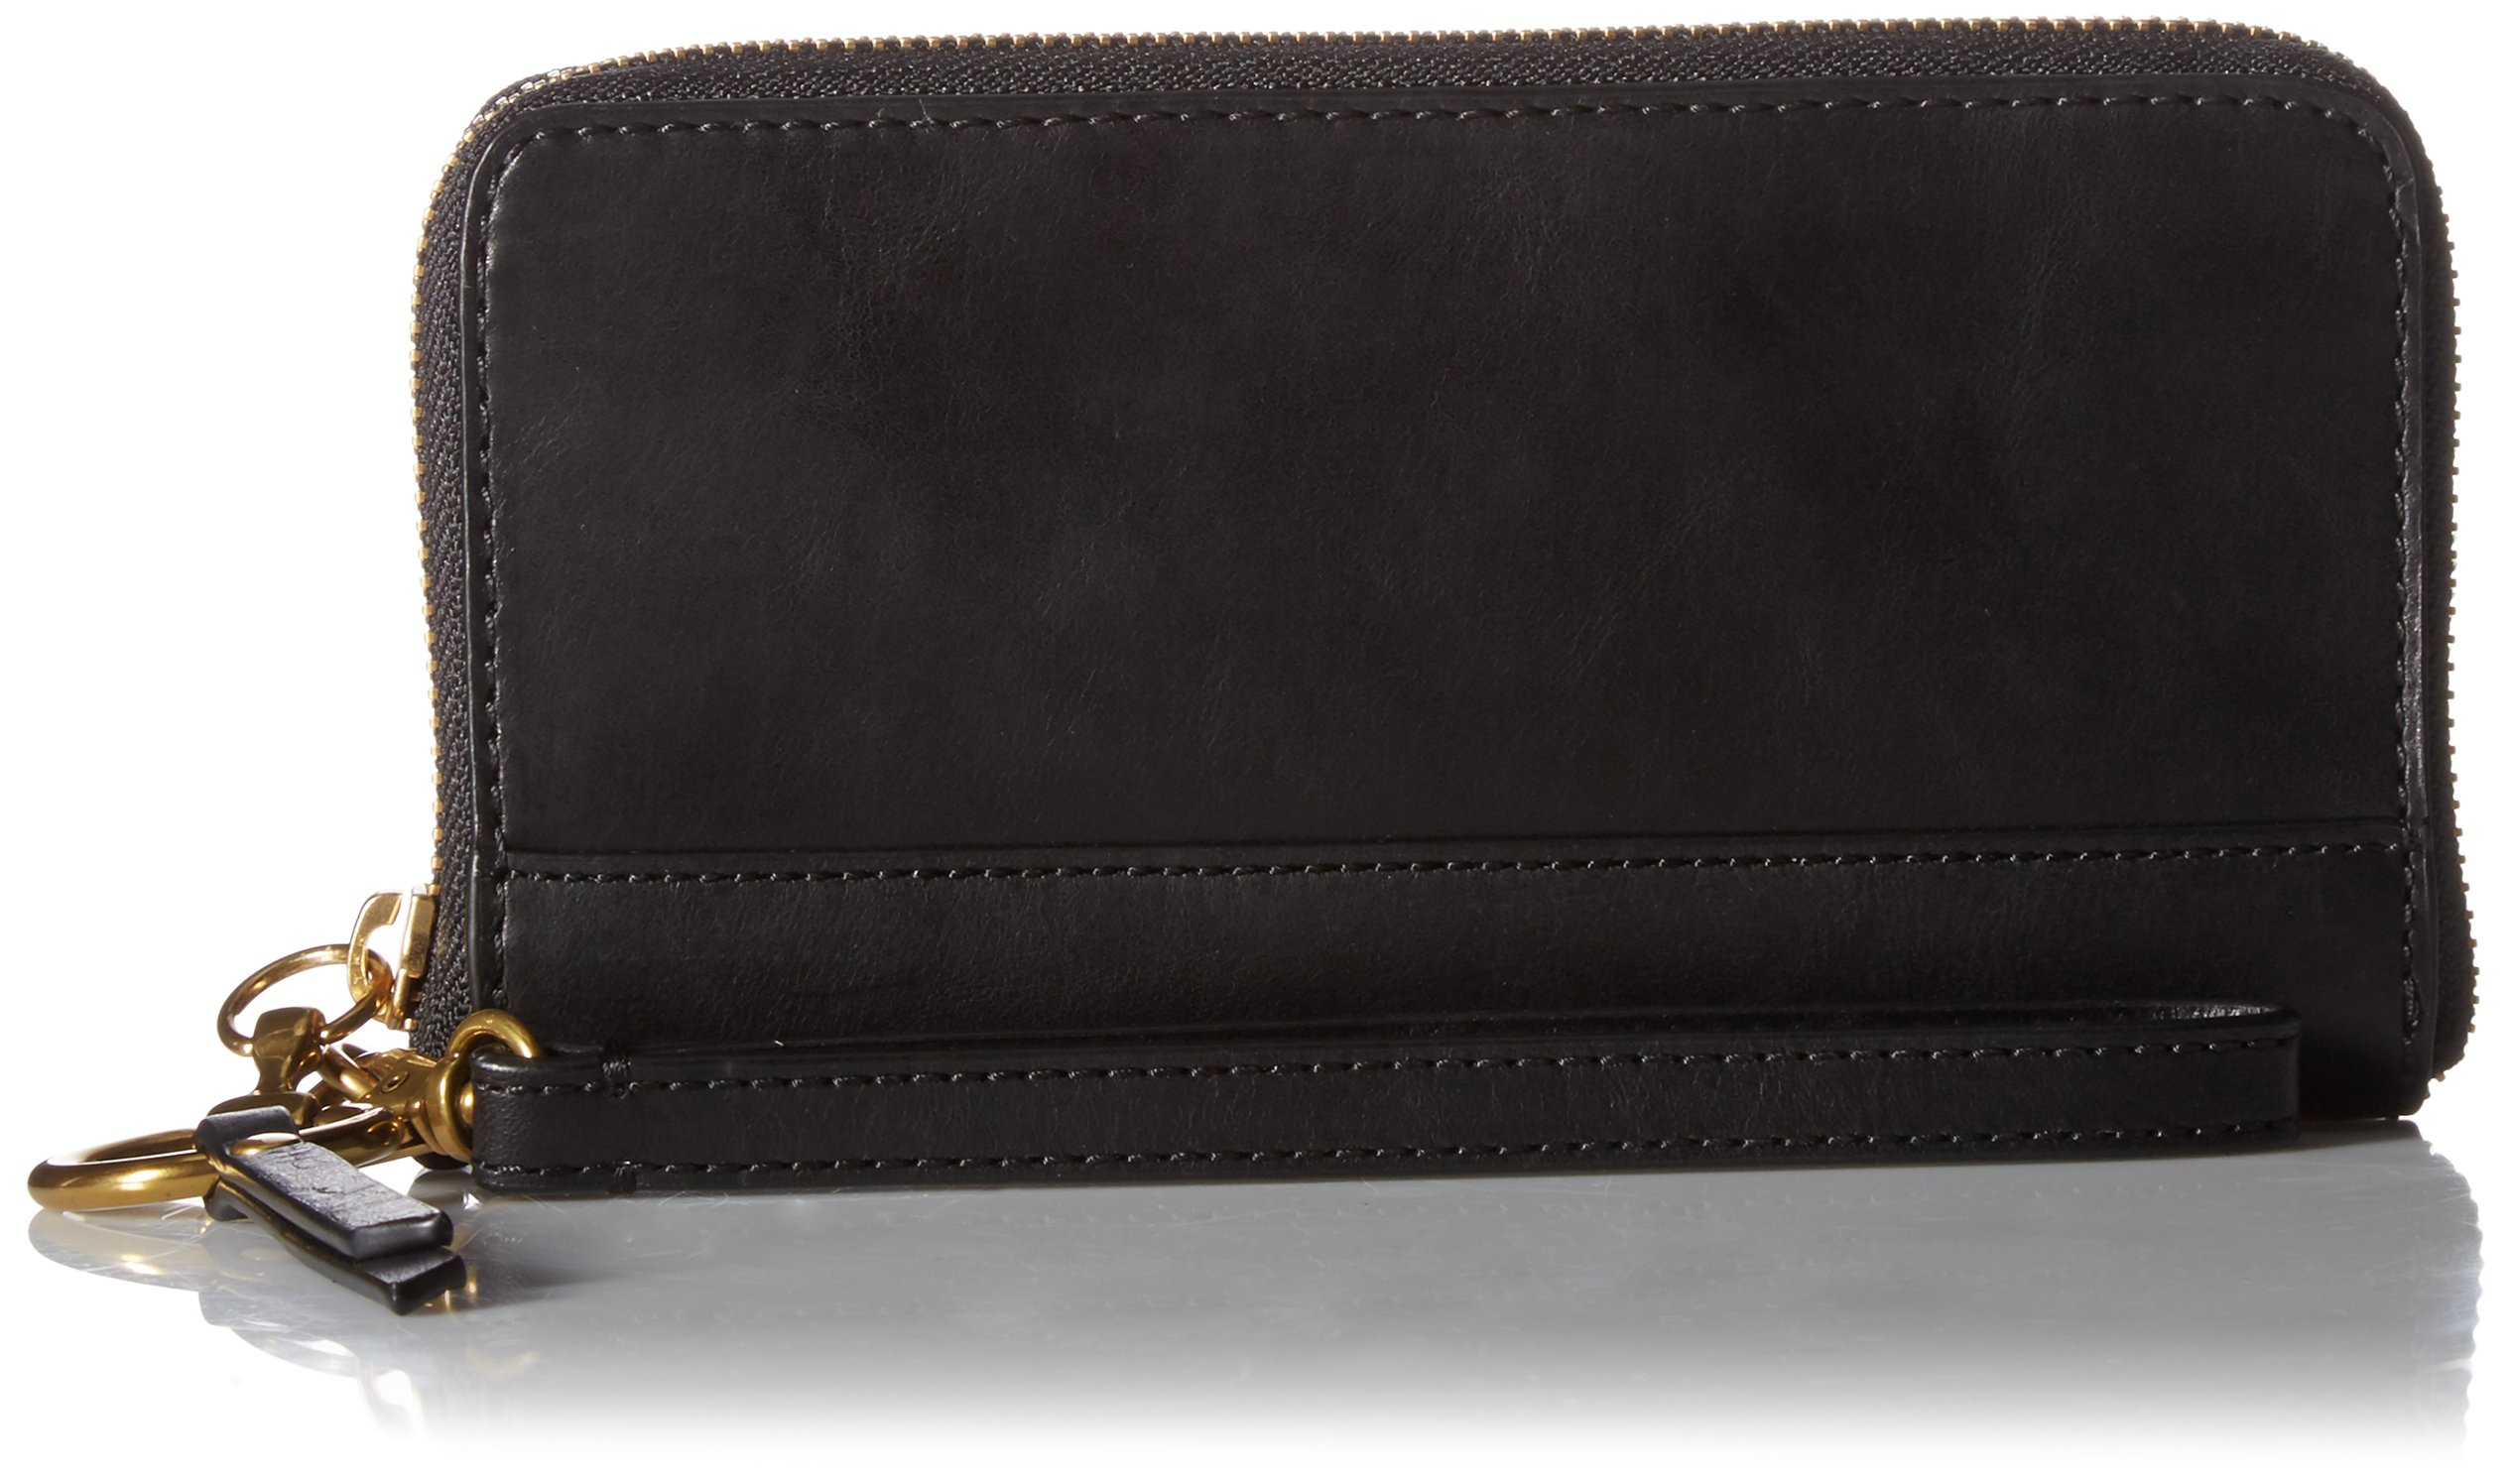 FRYE Ilana Harness Phone Wallet, Black